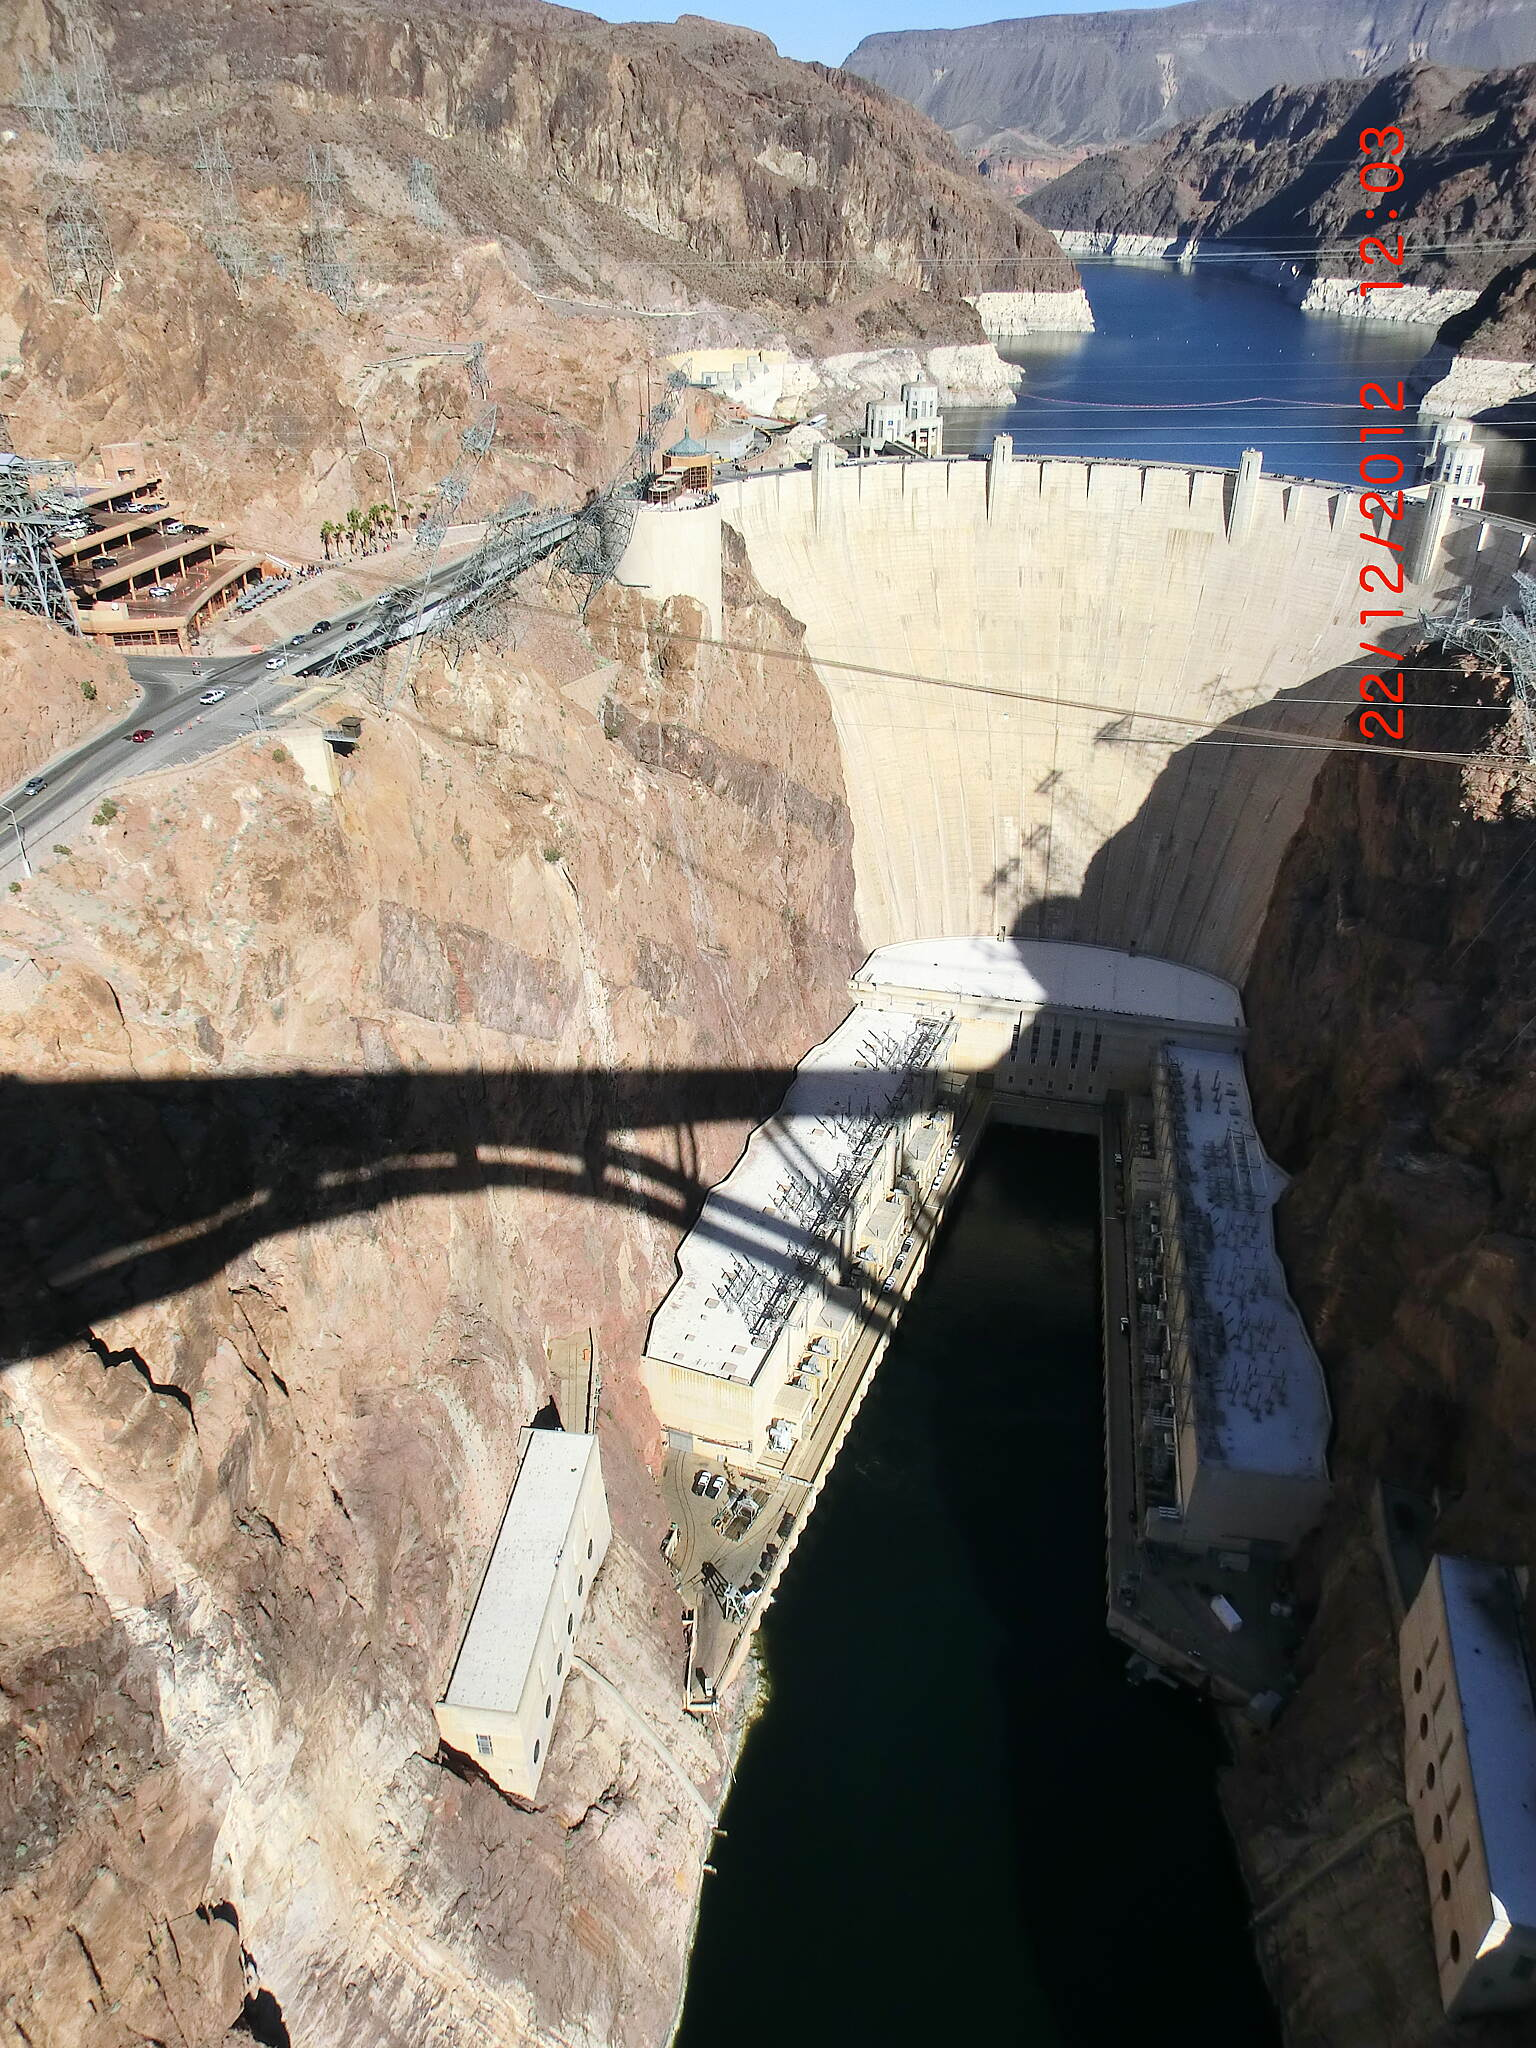 Historic Railroad Trail Hoover Dam from Bridge Shot on Saturday 12-22-2012 after mountain biking the River mountain loop trail and through the Railroad Tunnels. Fantastic ride!